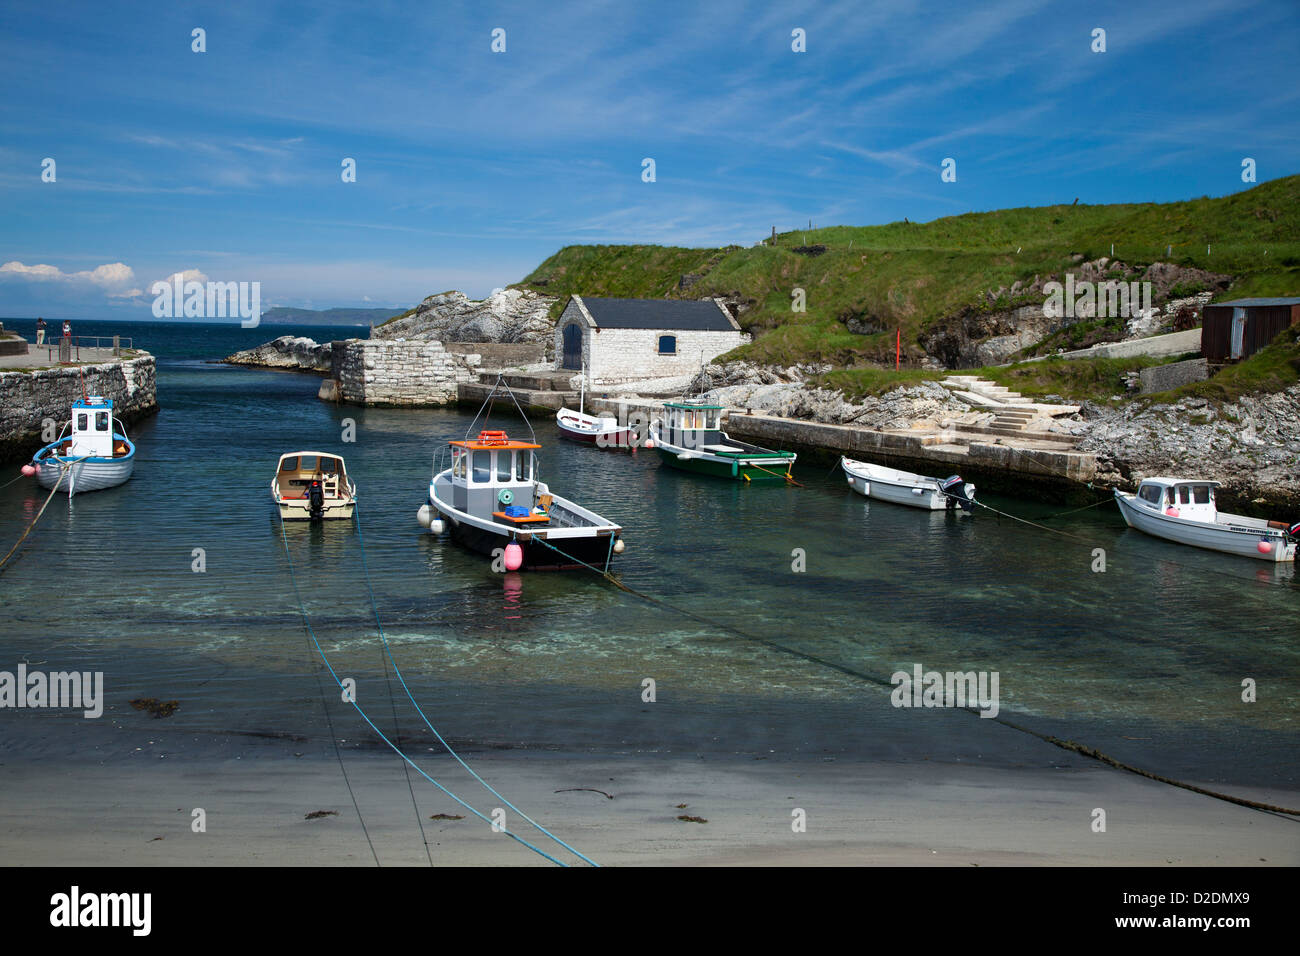 Fishing boats moored in Ballintoy Harbour, Causeway Coast, County Antrim, Northern Ireland. - Stock Image